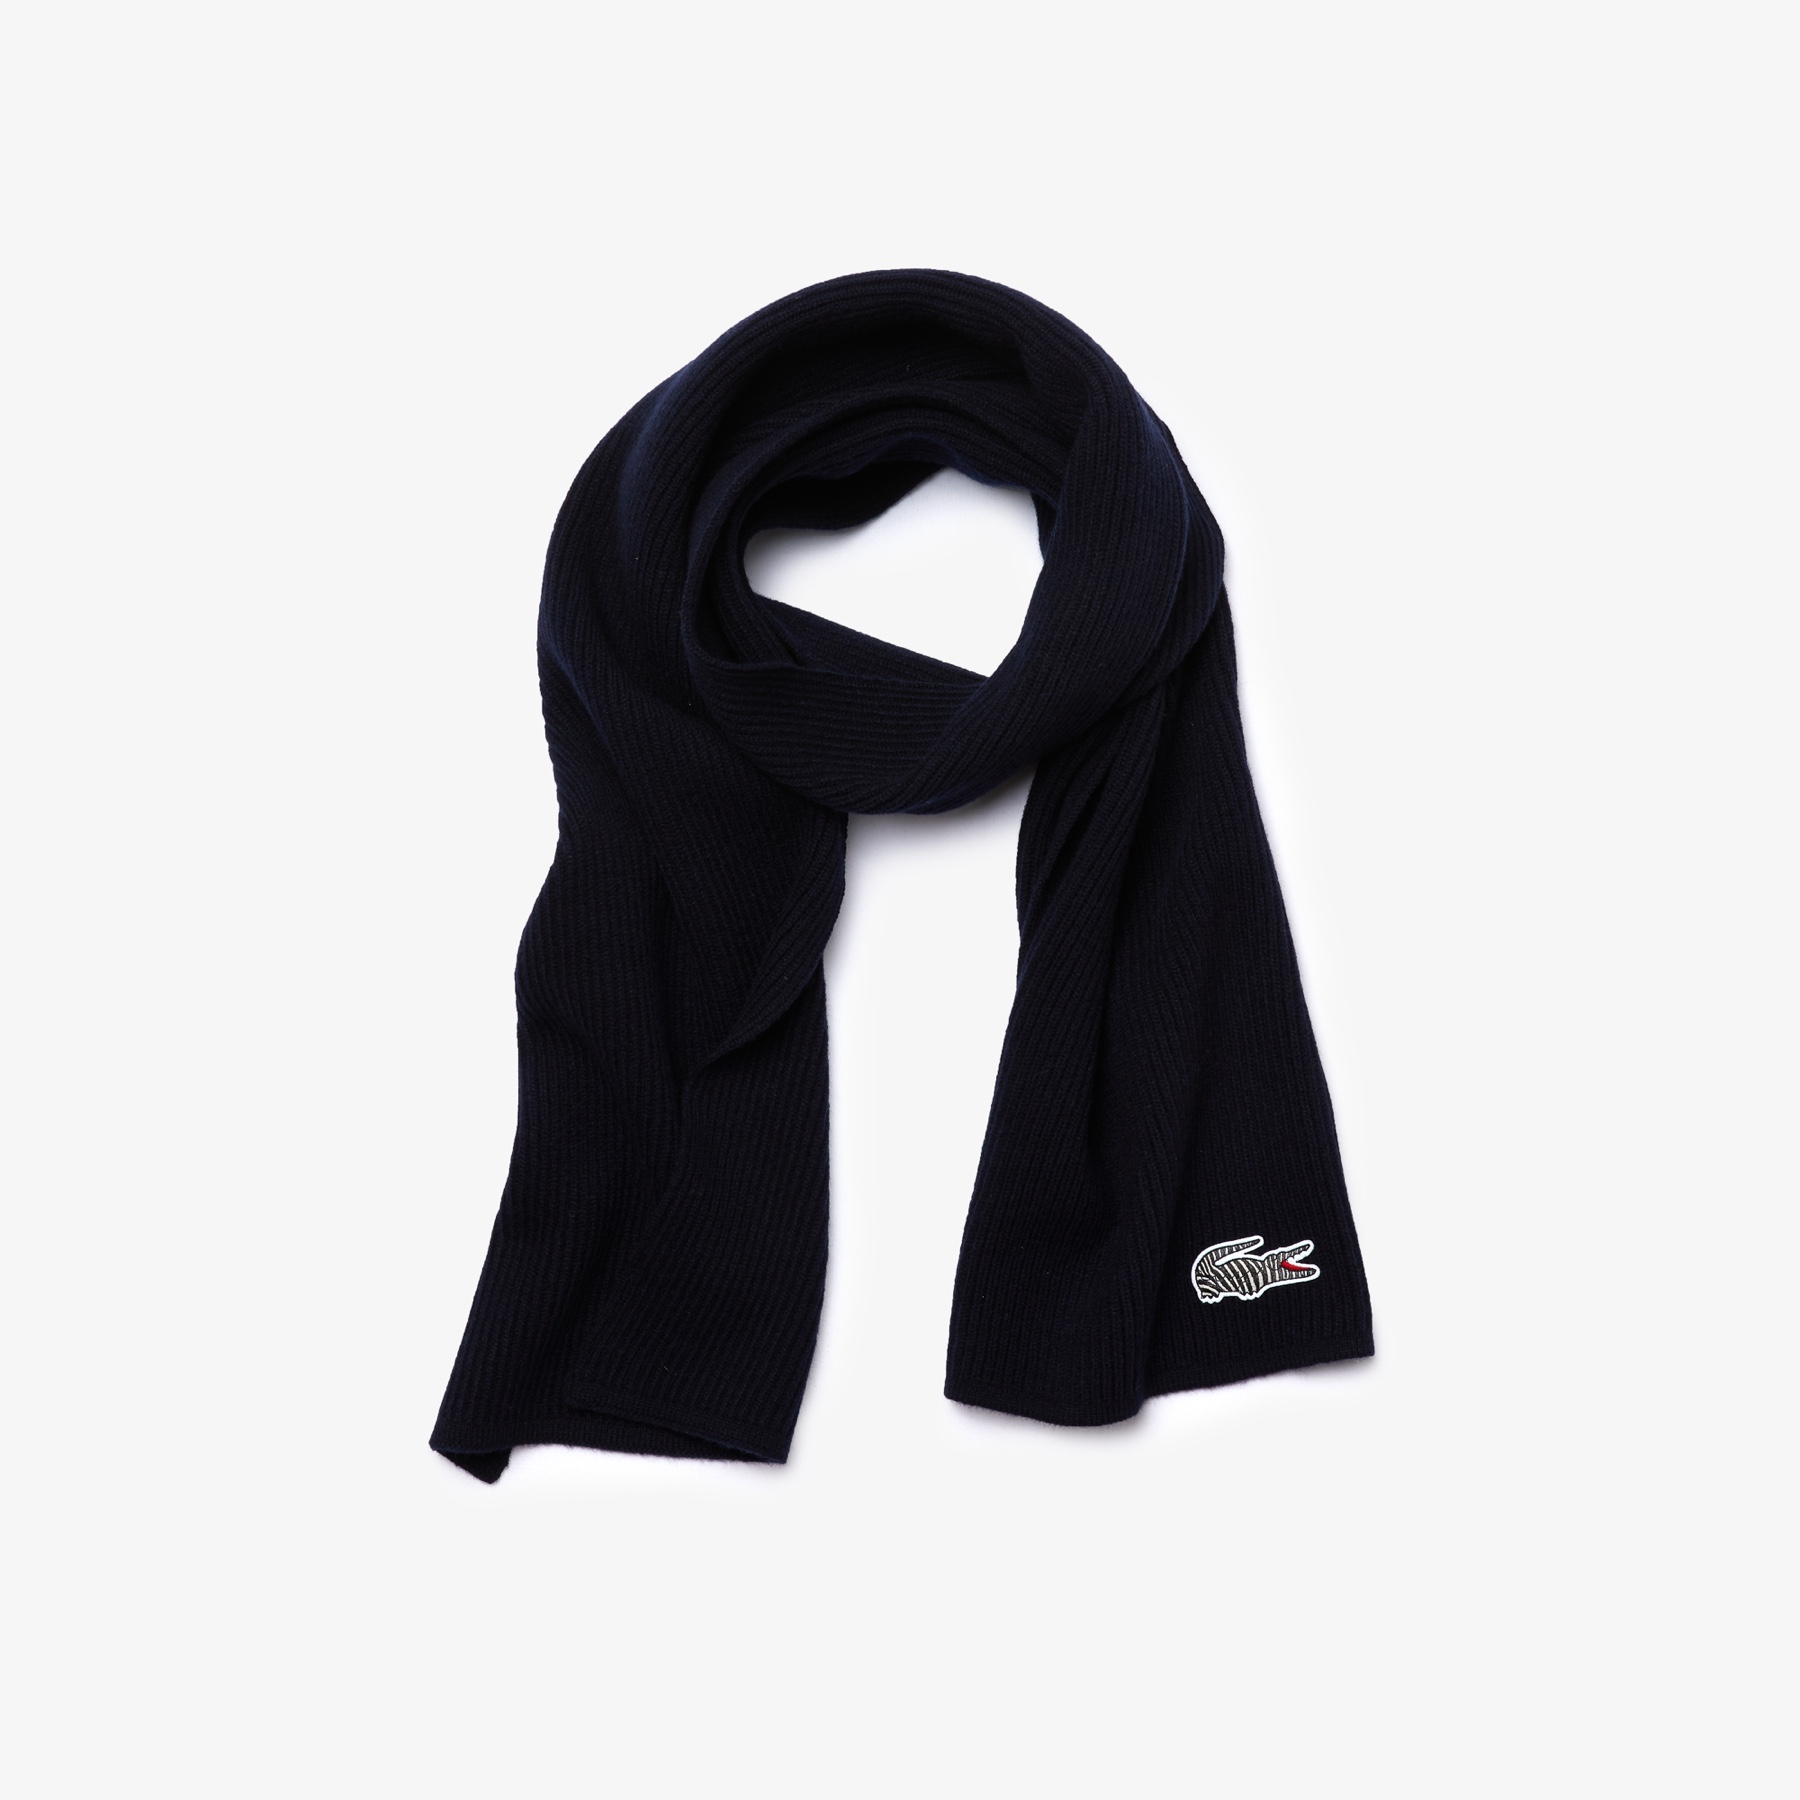 Lacoste National Geographic scarf